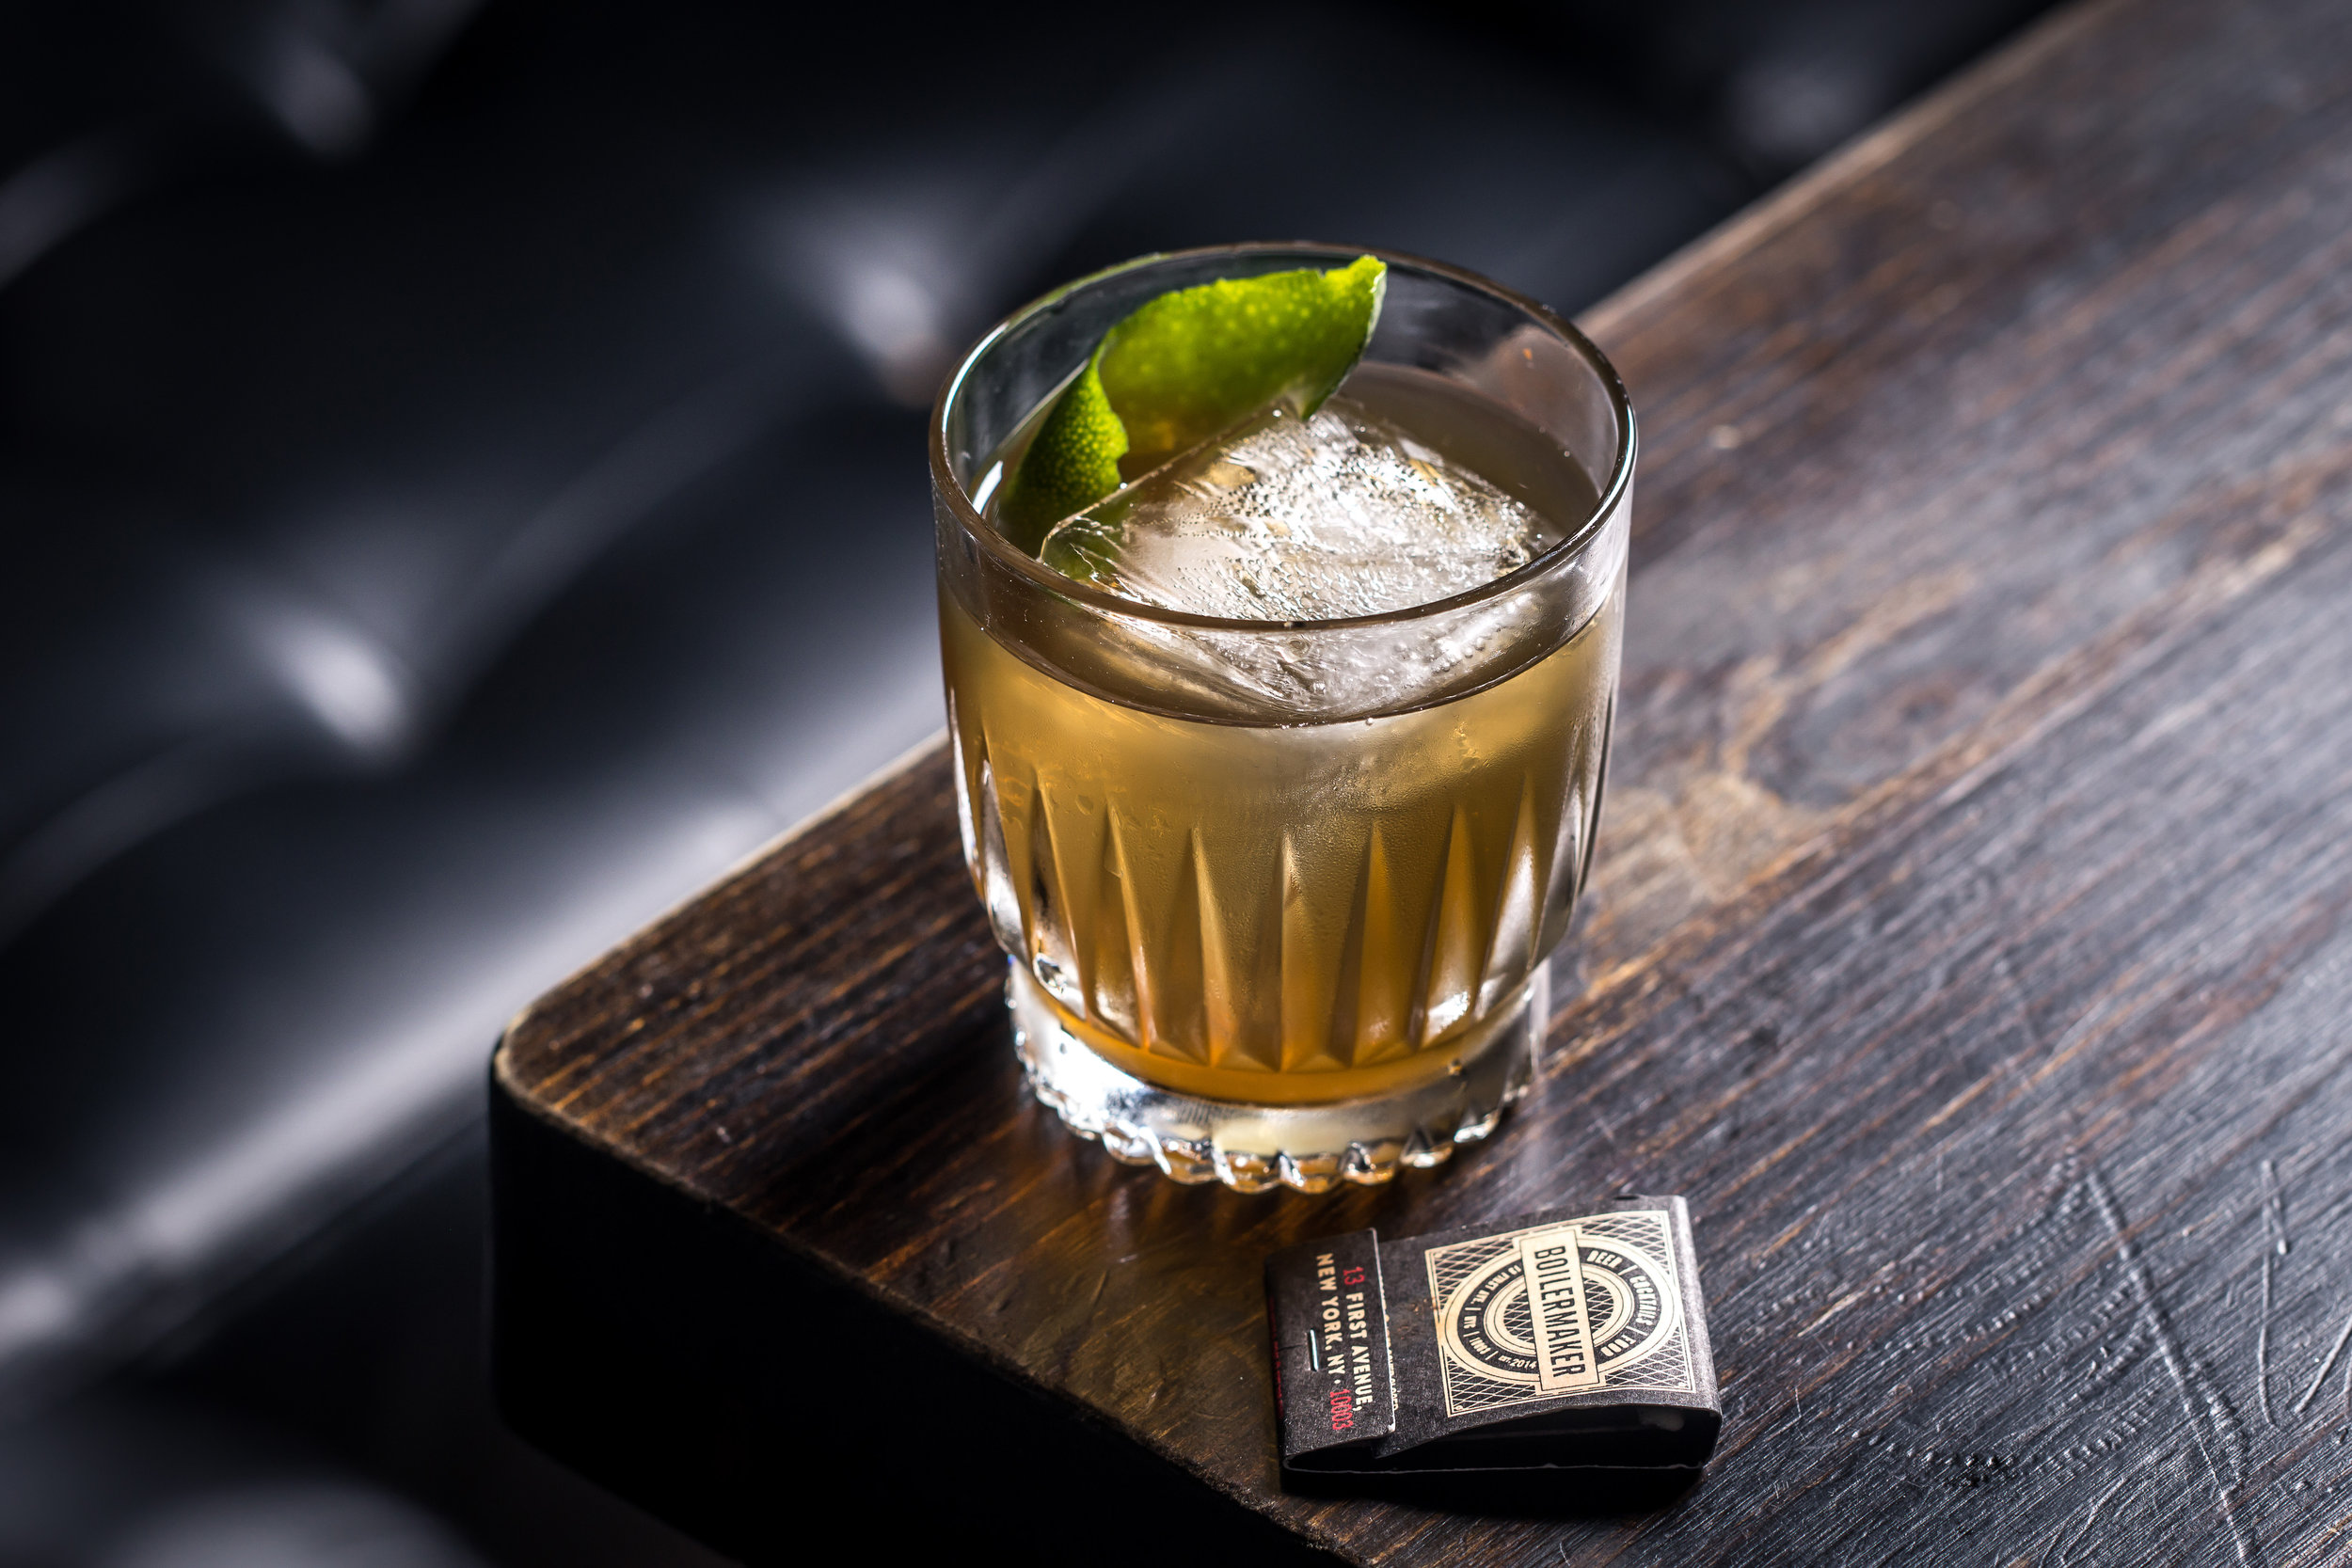 BOILERMAKER_031016_salted_honey_old_fashioned_Credit-Paul_Wagtouicz_05.jpg